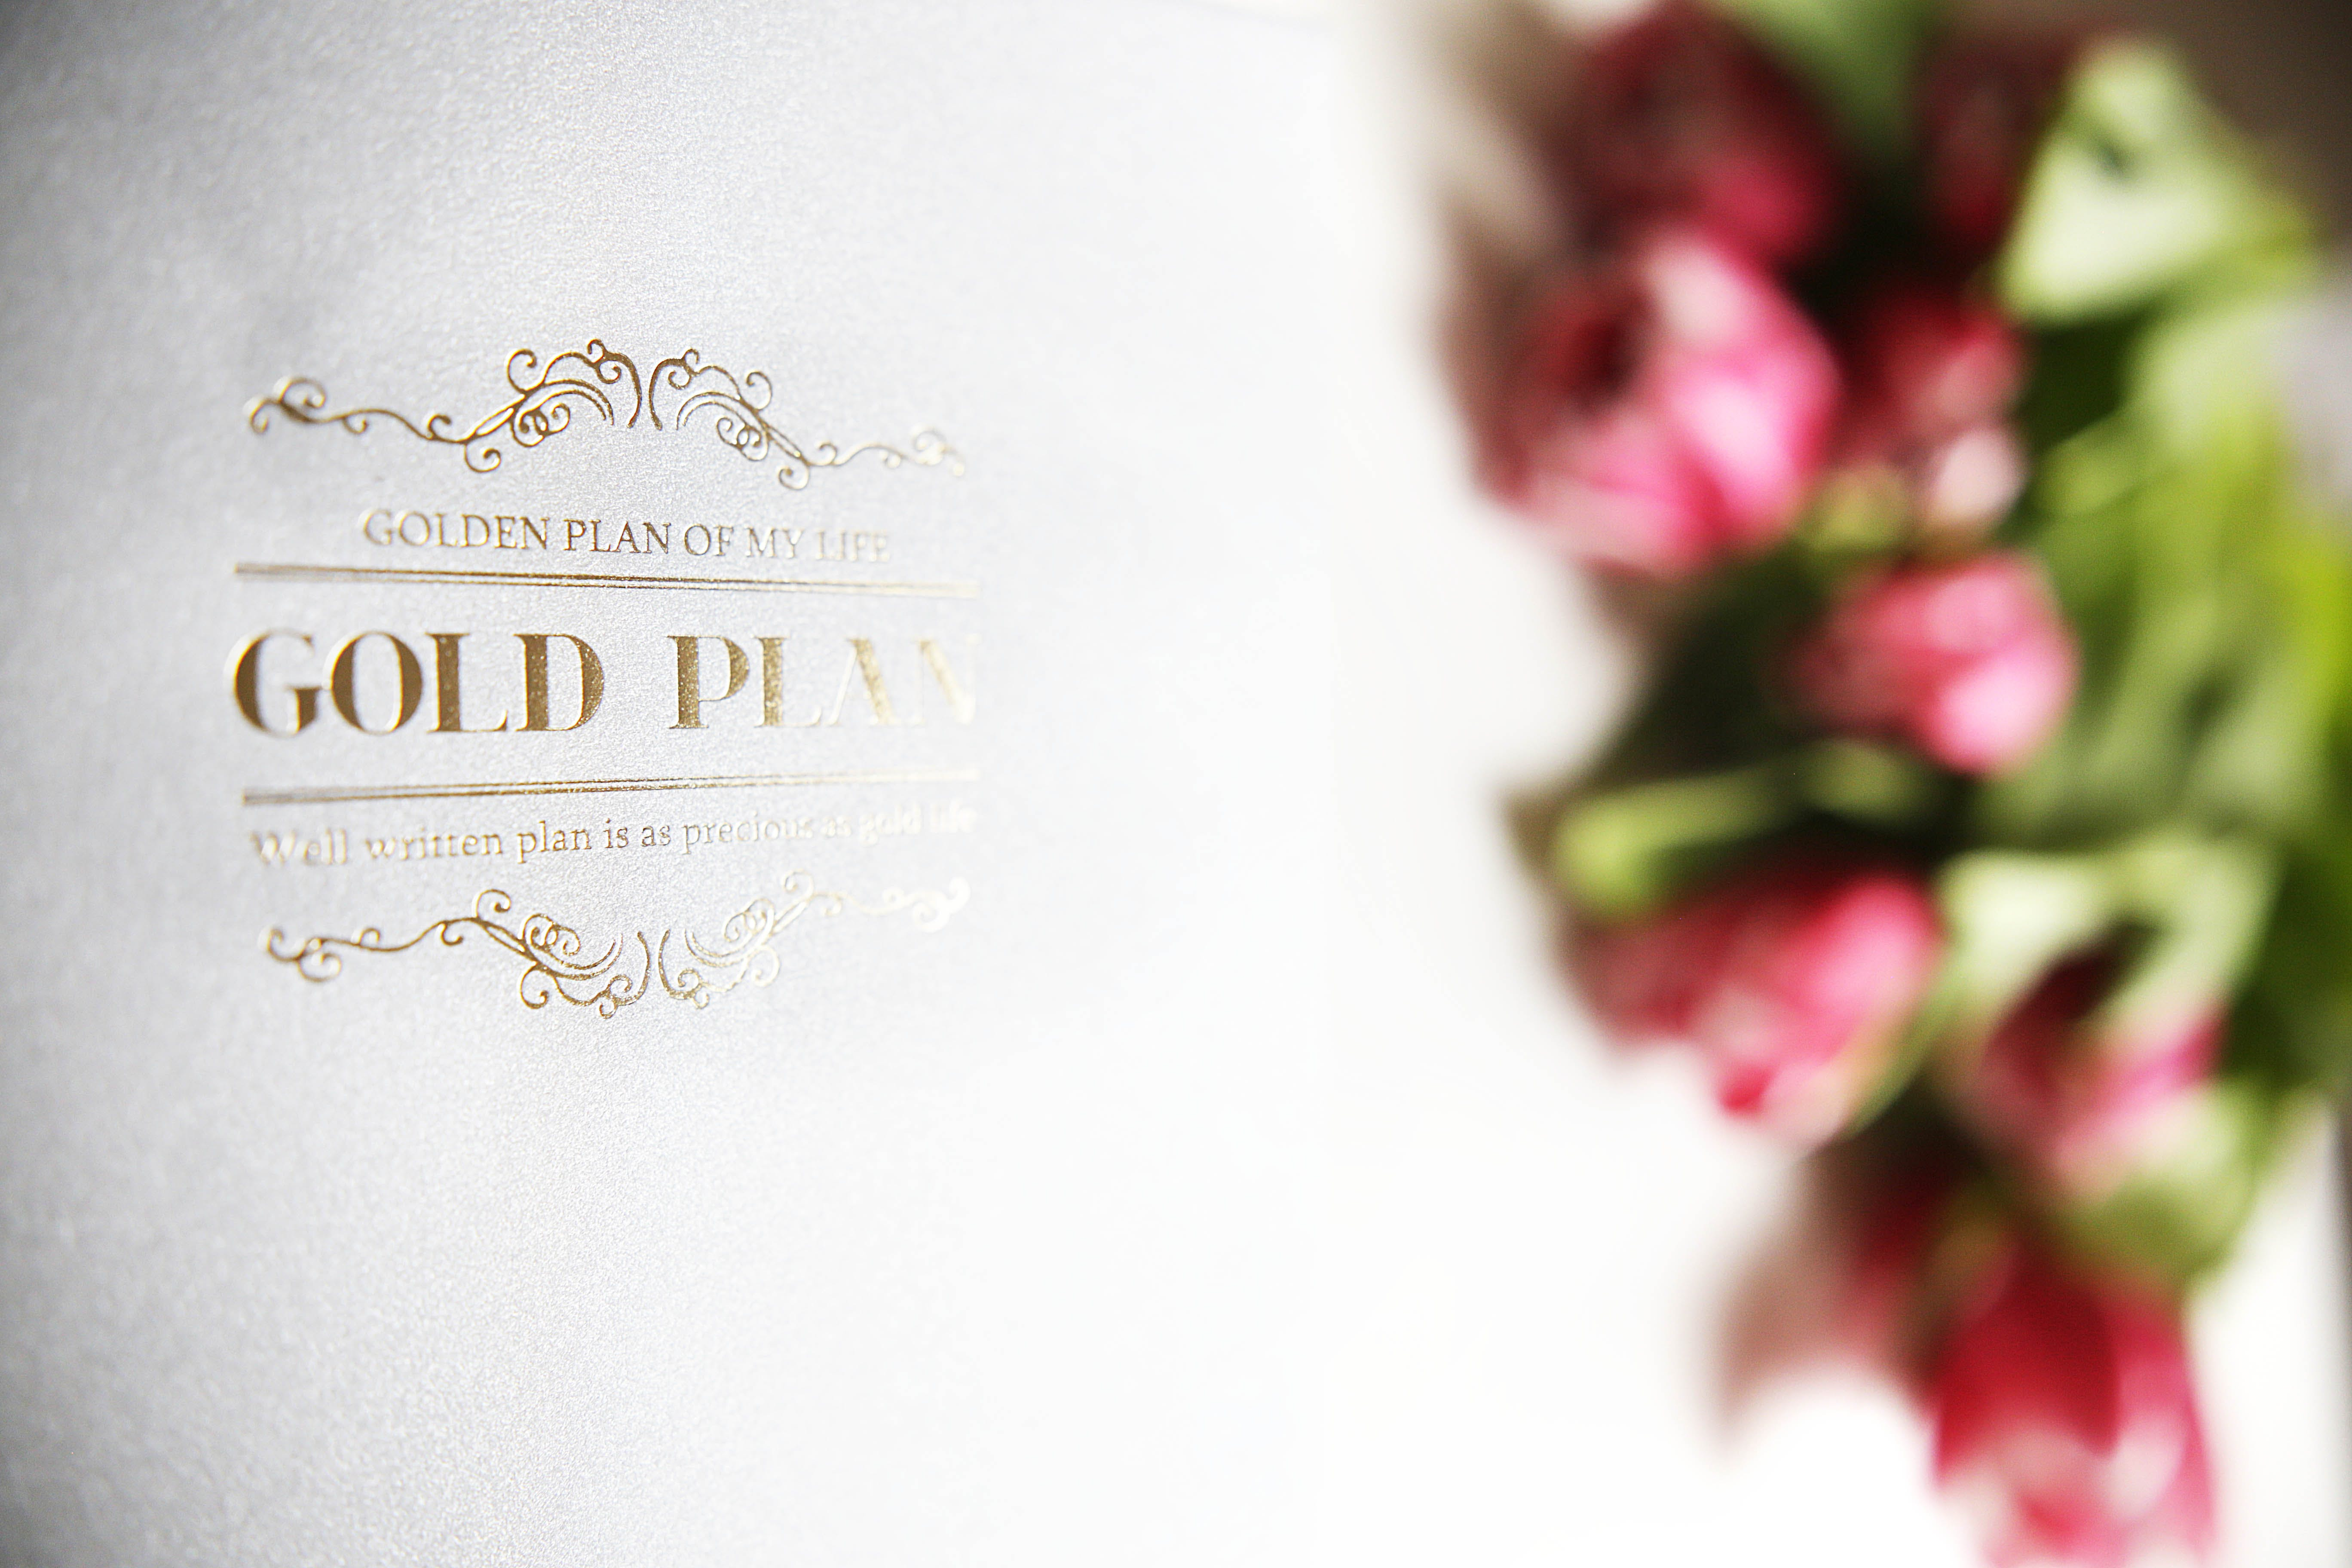 Free stock photo of The Gold Plan with flowers